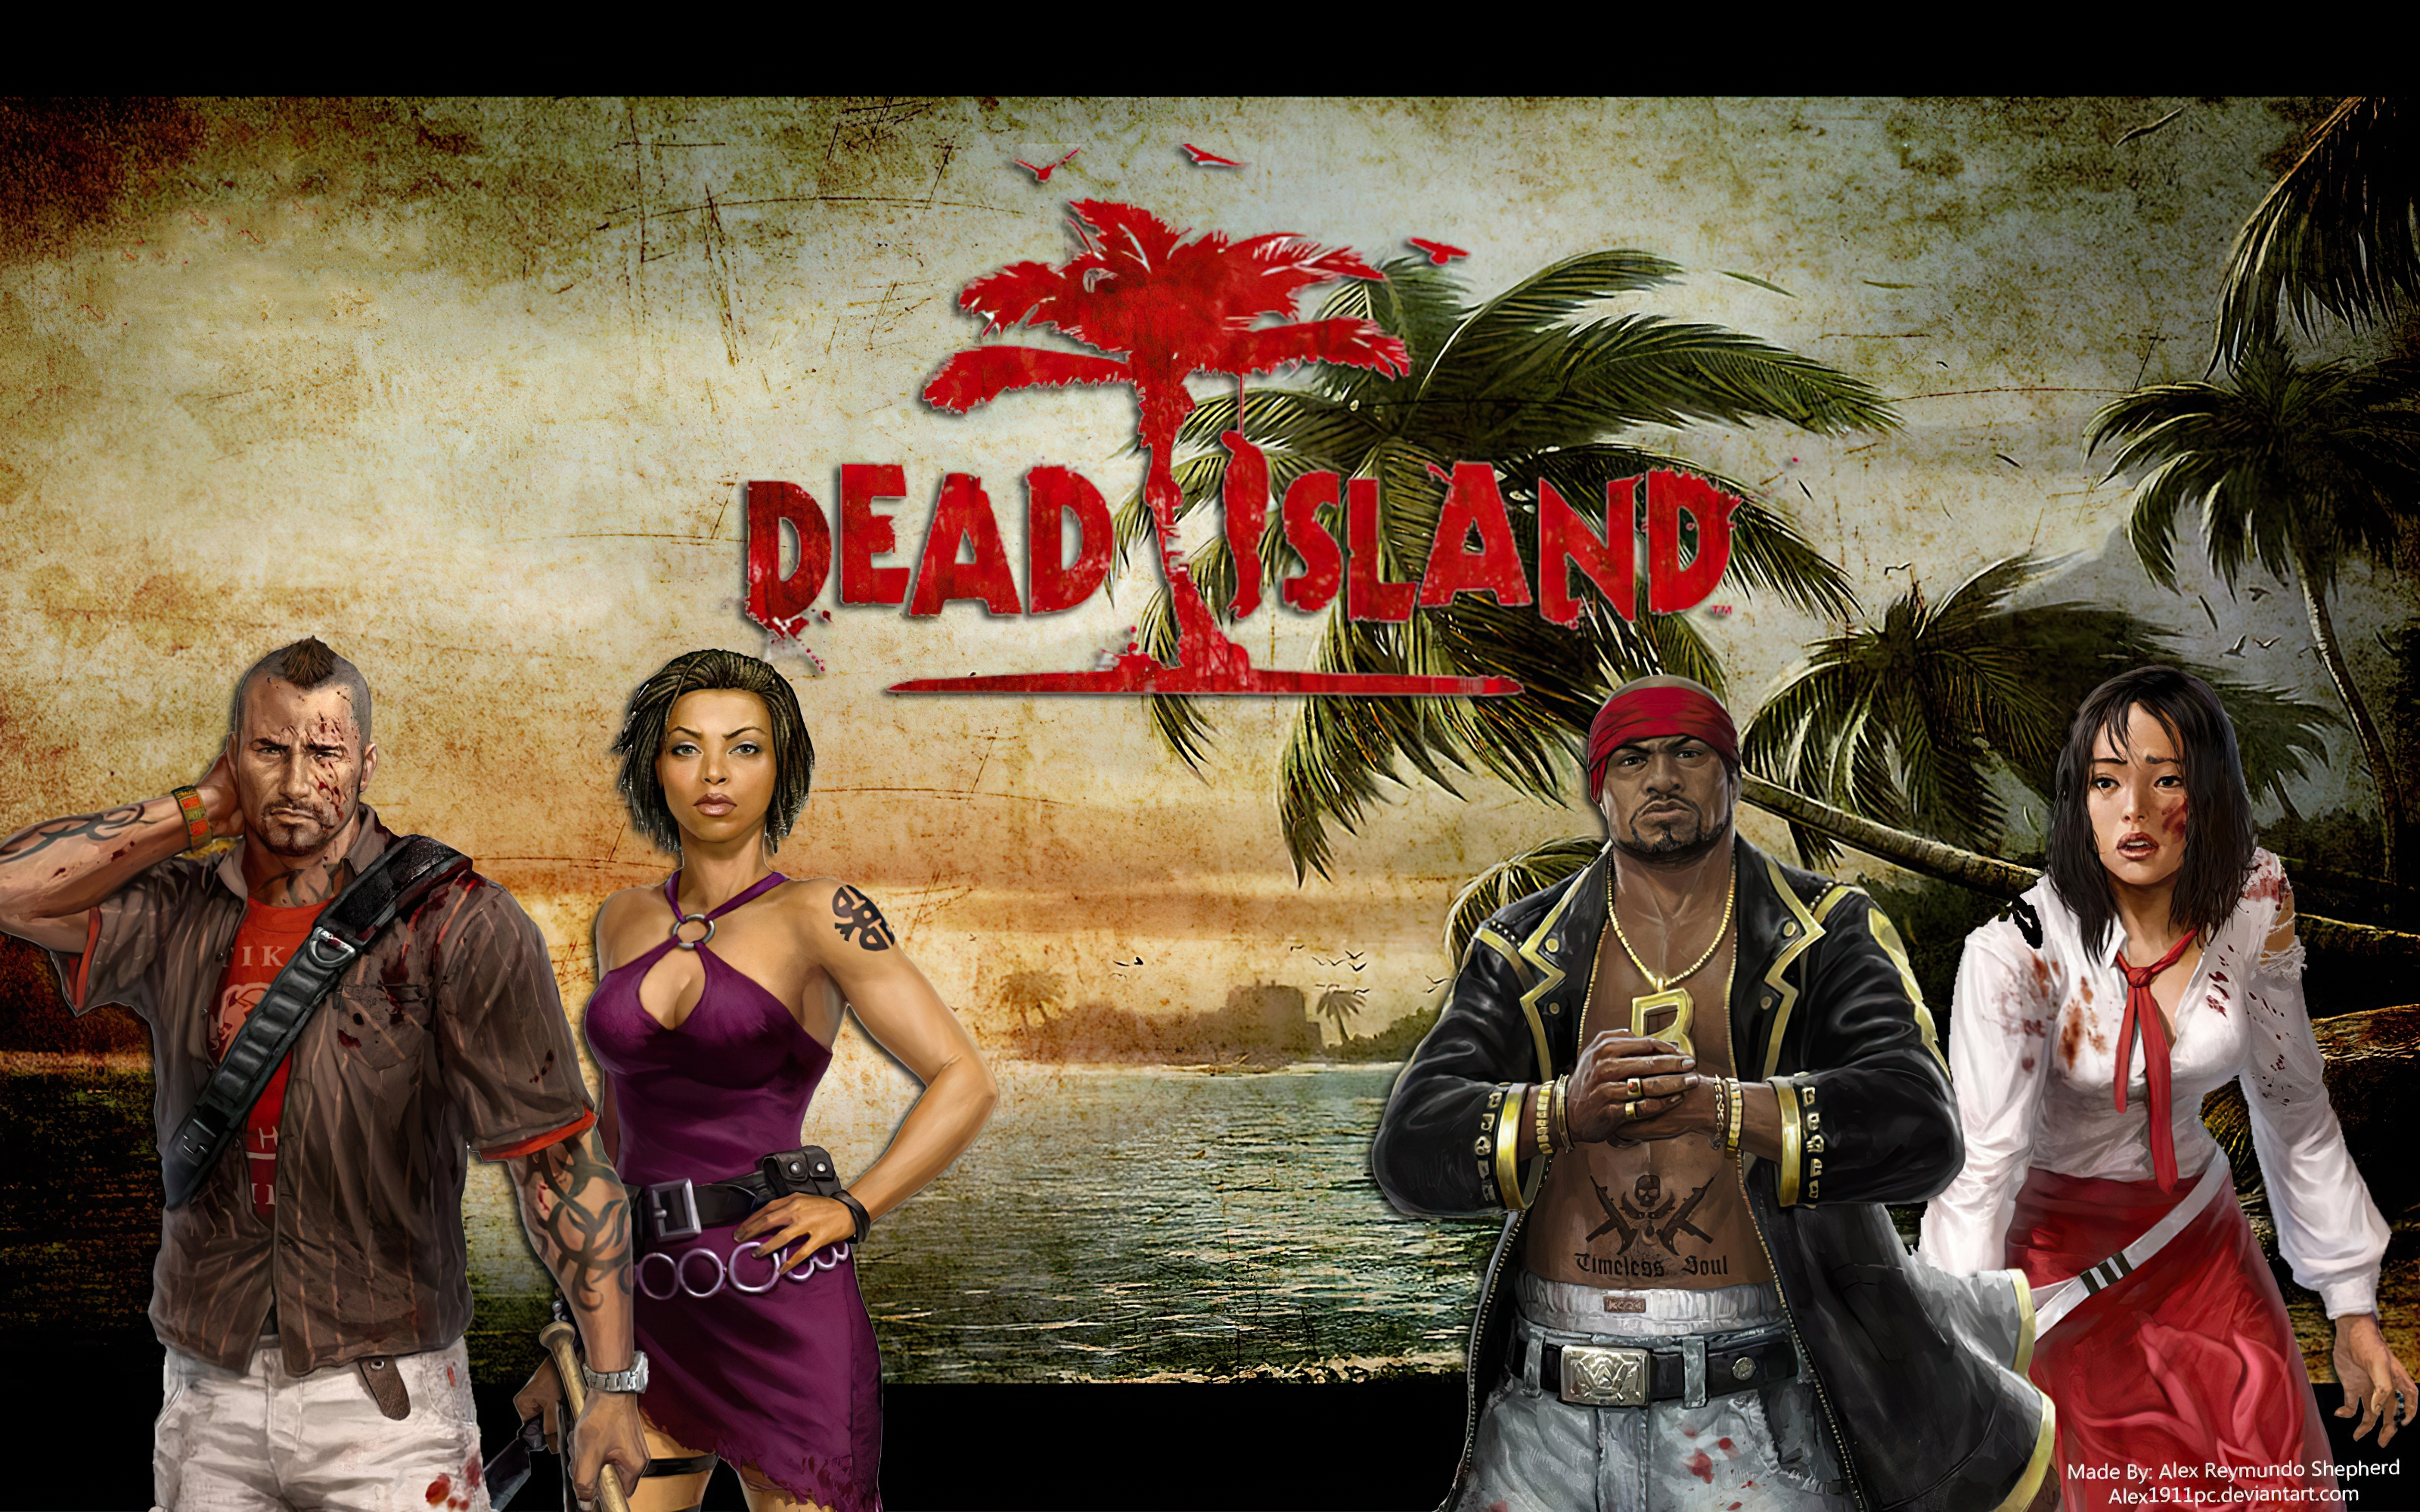 57 dead island hd wallpapers background images wallpaper abyss 57 dead island hd wallpapers background images wallpaper abyss page 2 voltagebd Choice Image